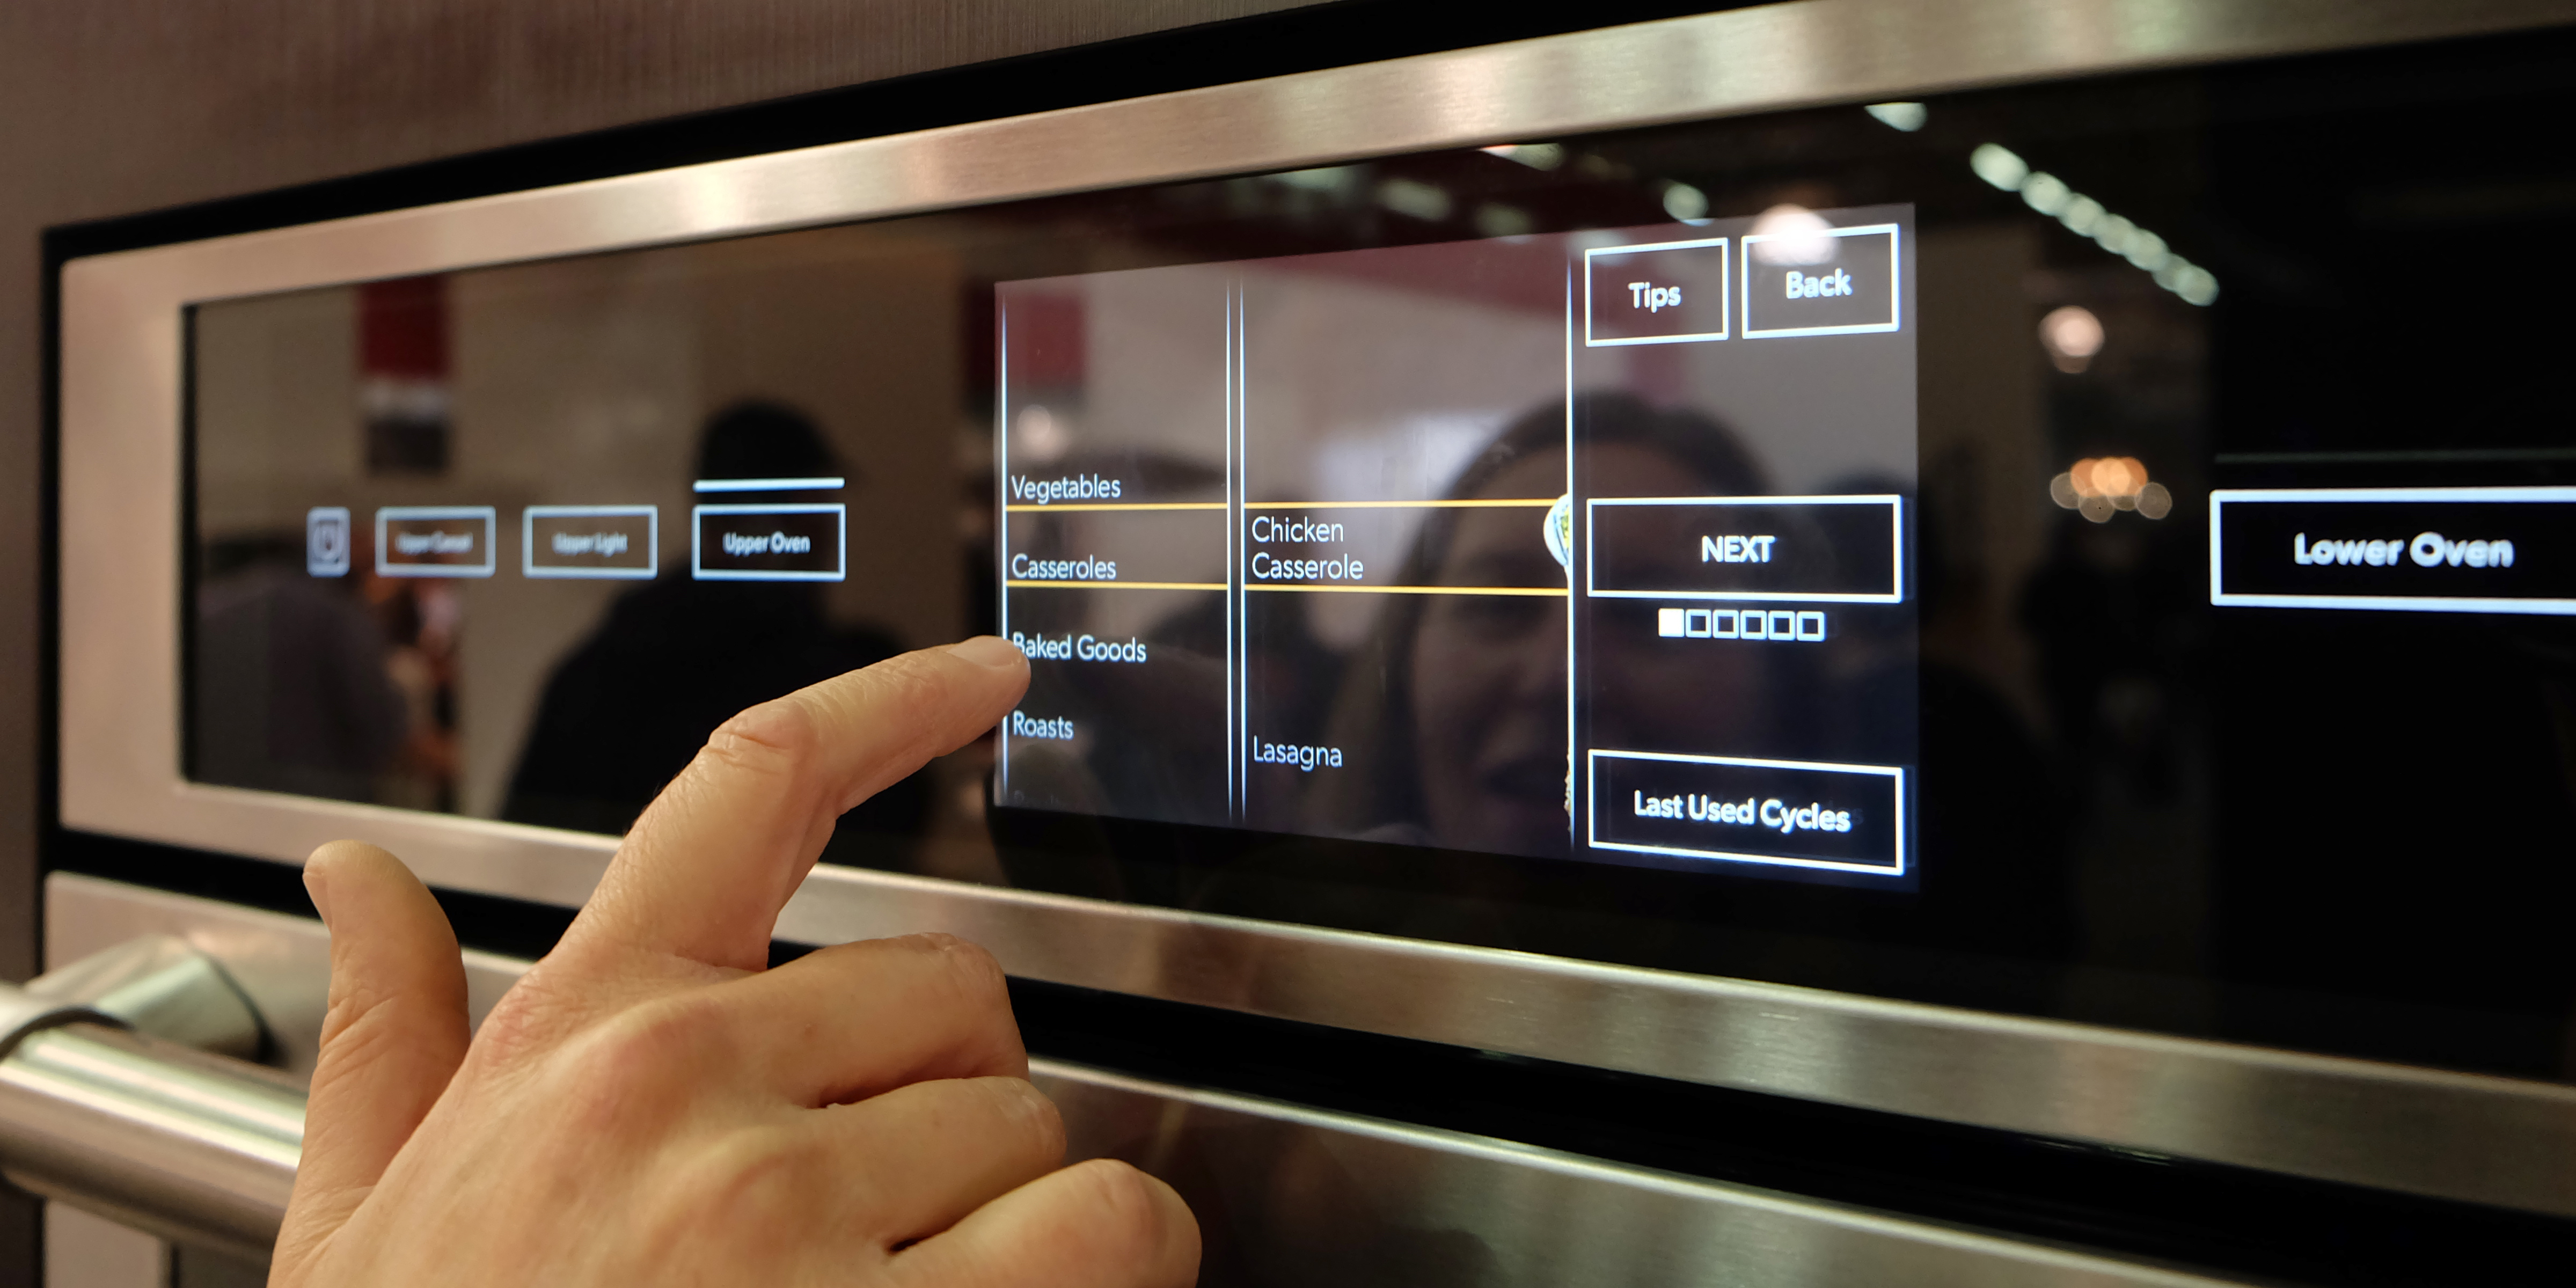 Handson with JennAirs New Futuristic Kitchen Appliances  Reviewedcom Ovens